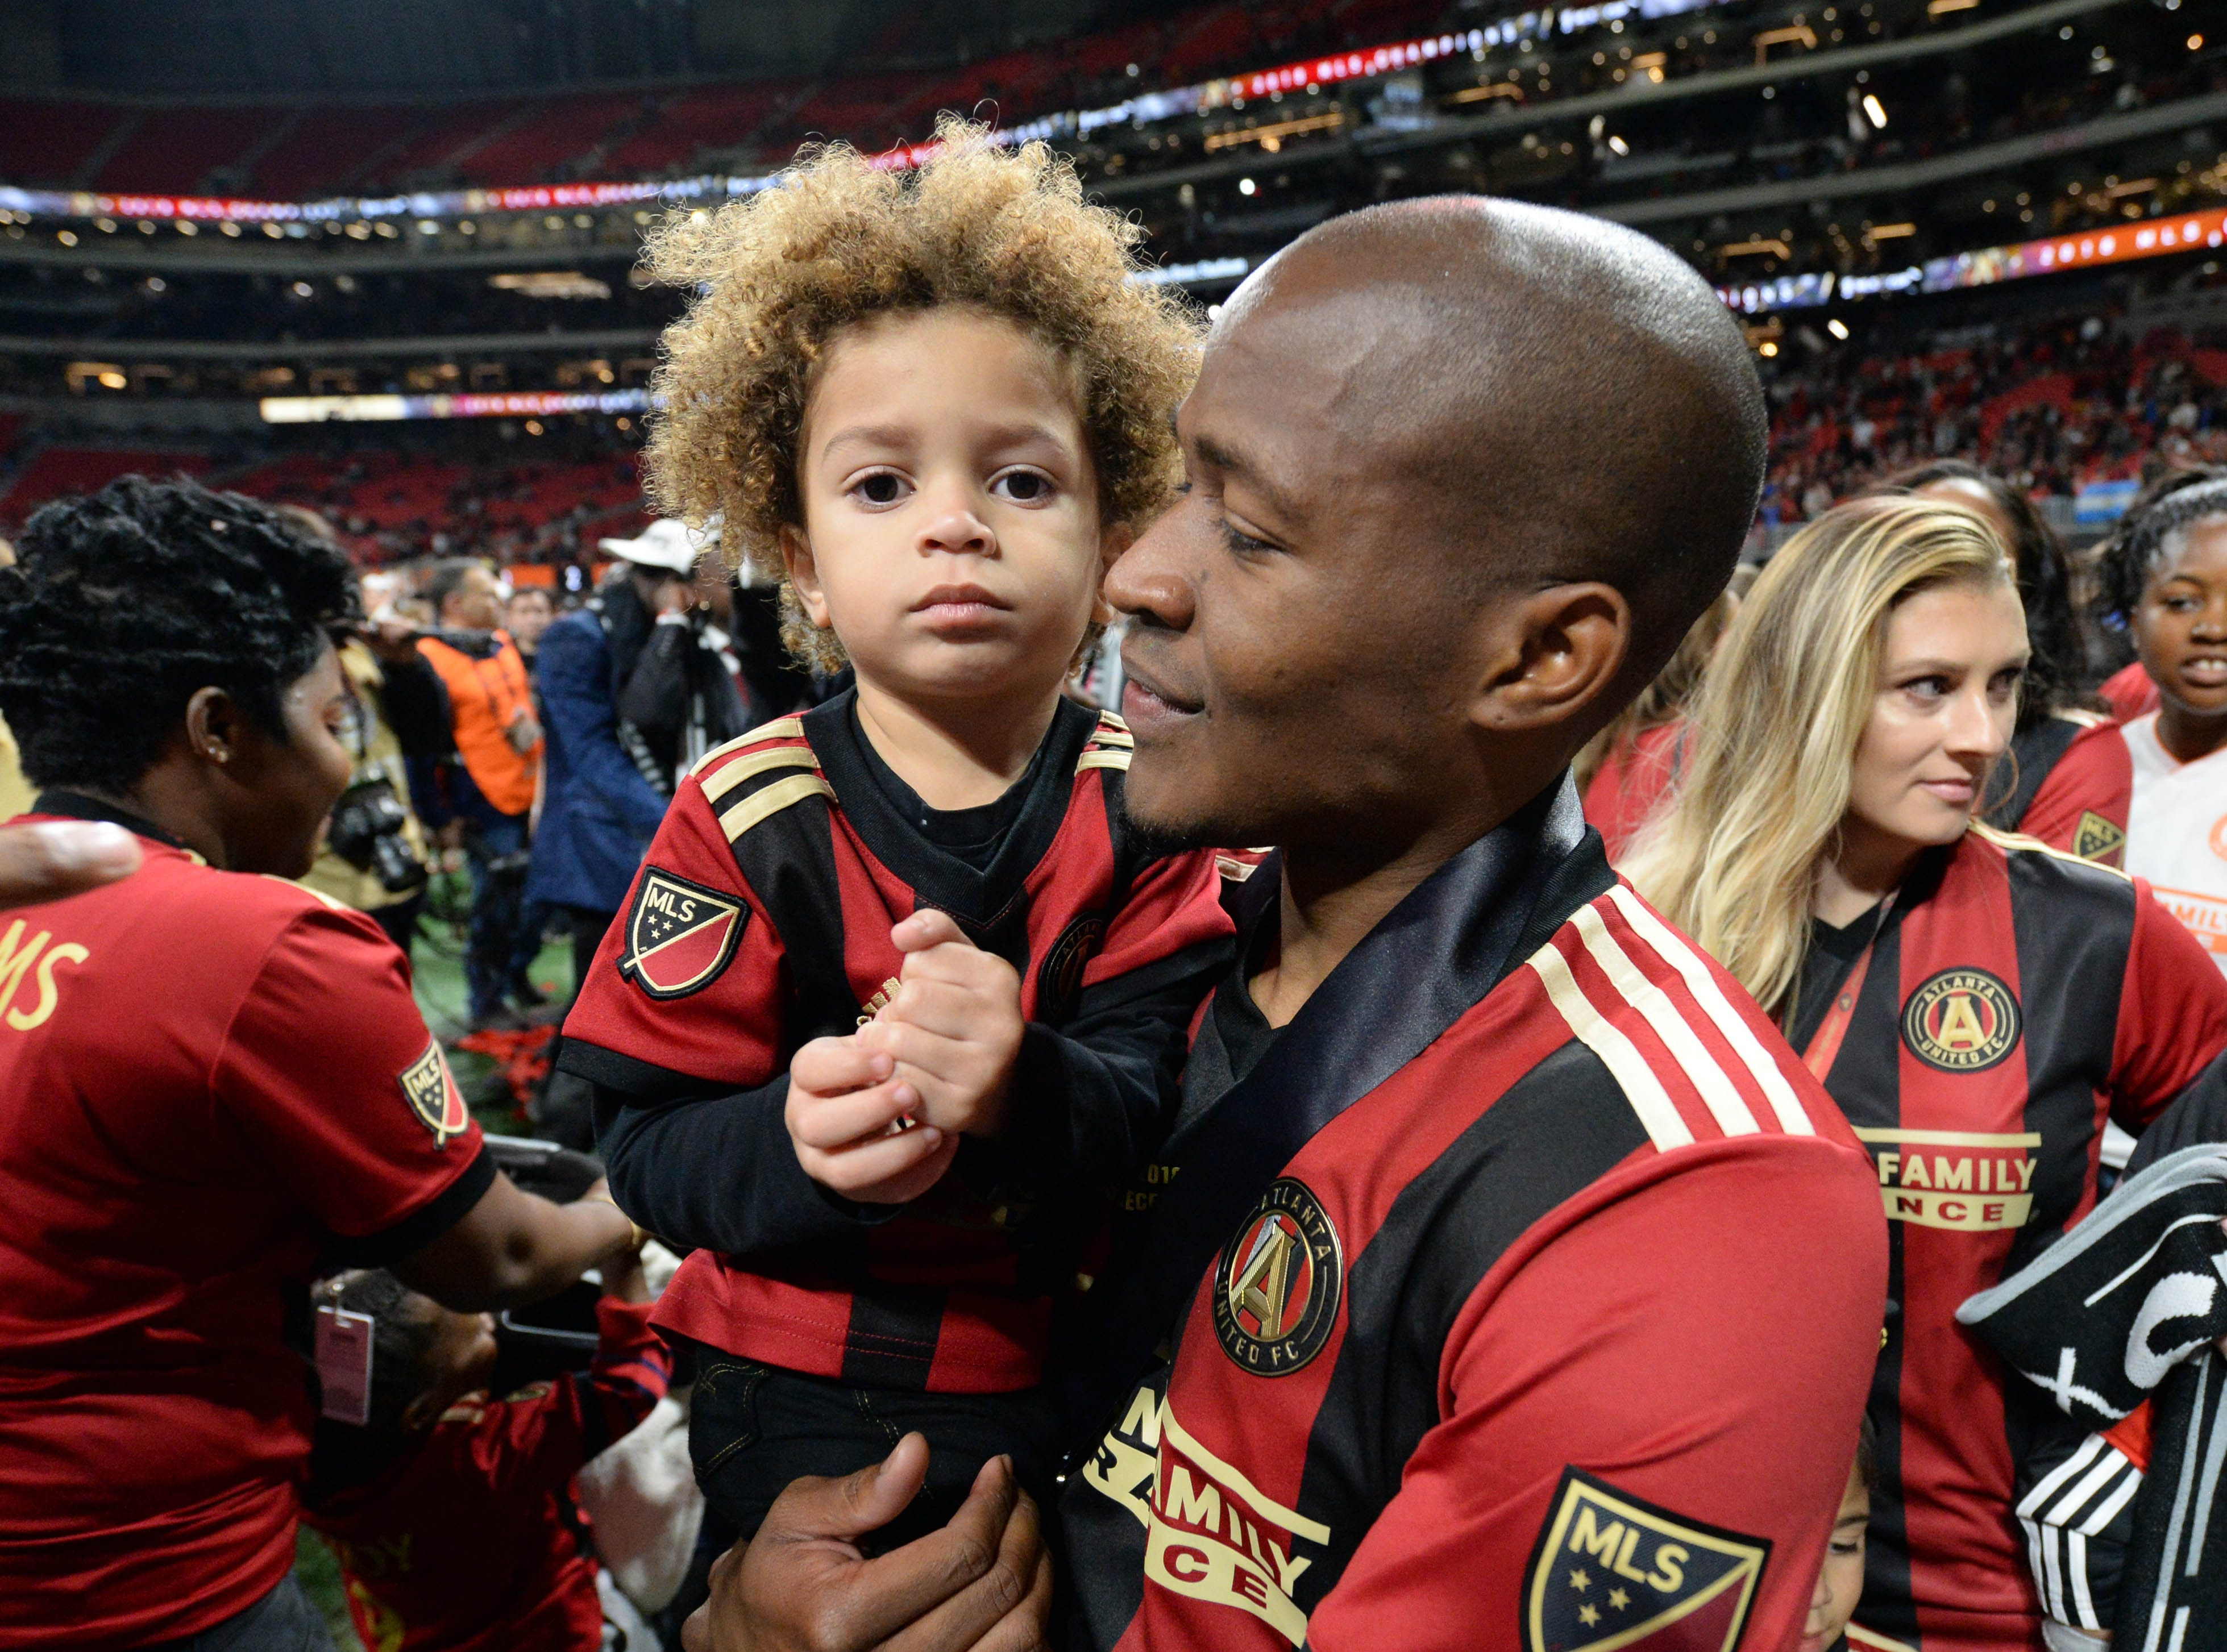 Atlanta United midfielder Darlington Nagbe celebrates with his child after defeating the Portland Timbers in the 2018 MLS Cup.